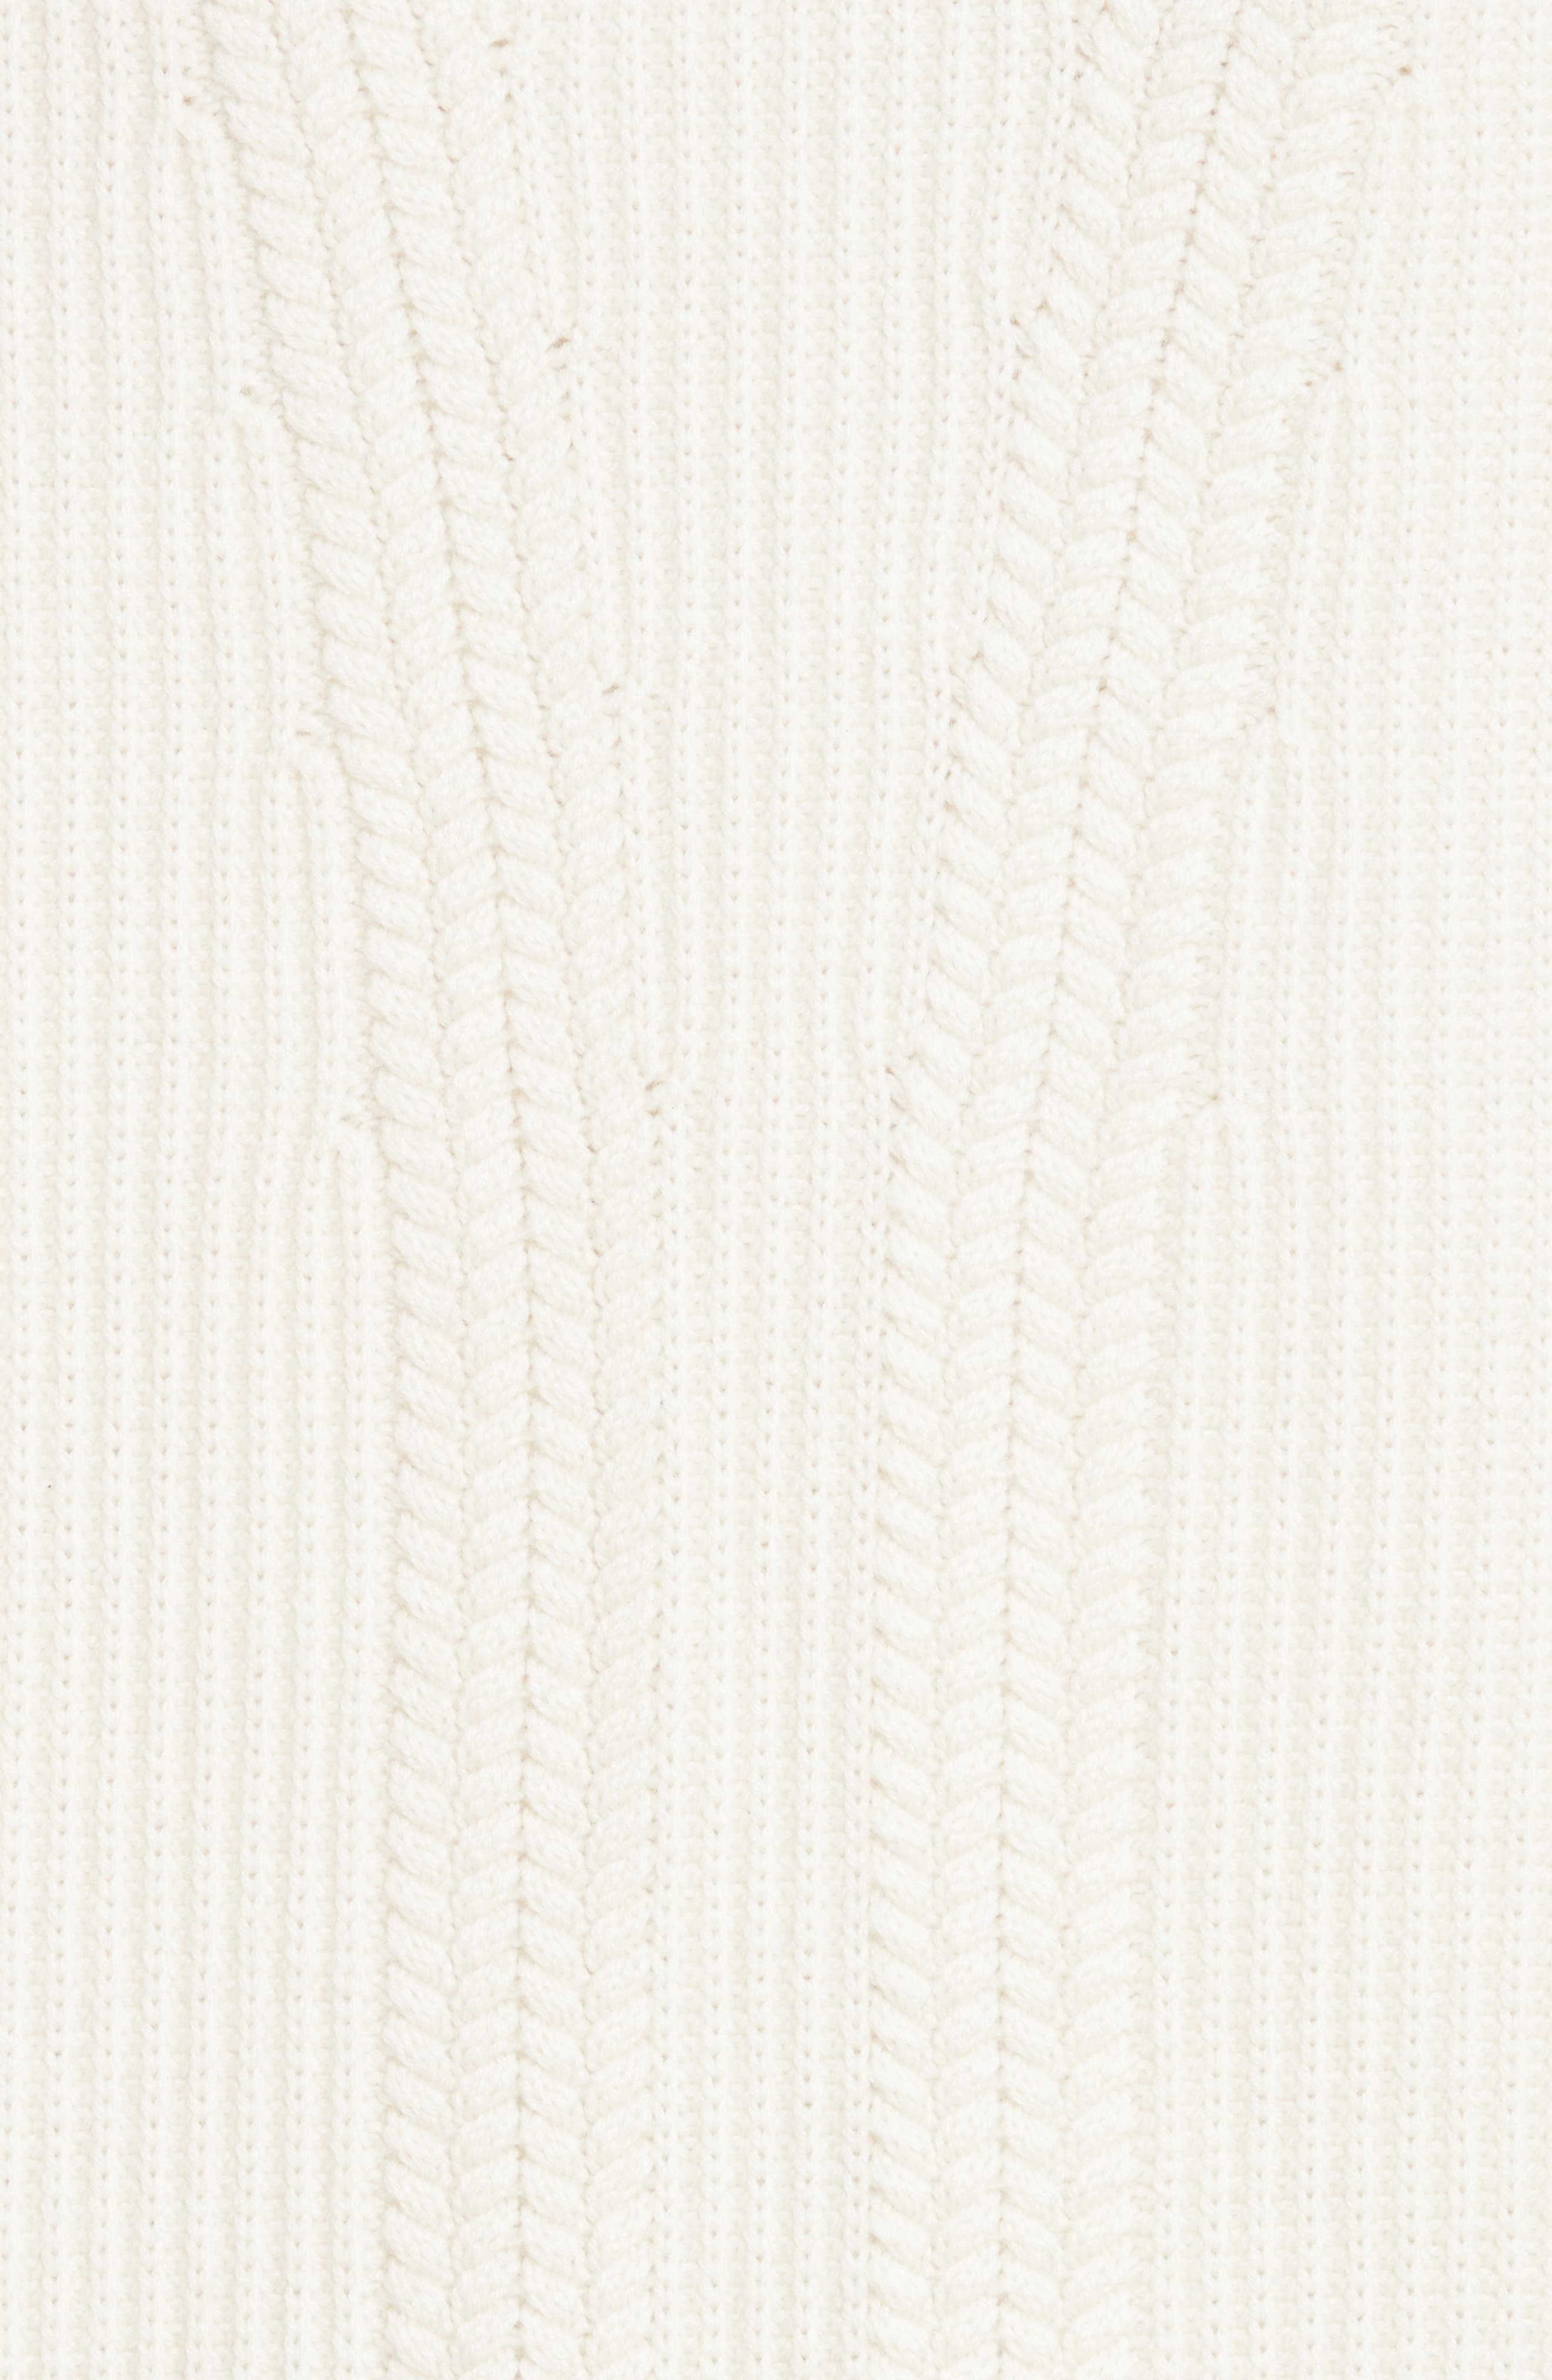 Santerno Wool & Cashmere Cable Knit Sweater,                             Alternate thumbnail 5, color,                             Natural White